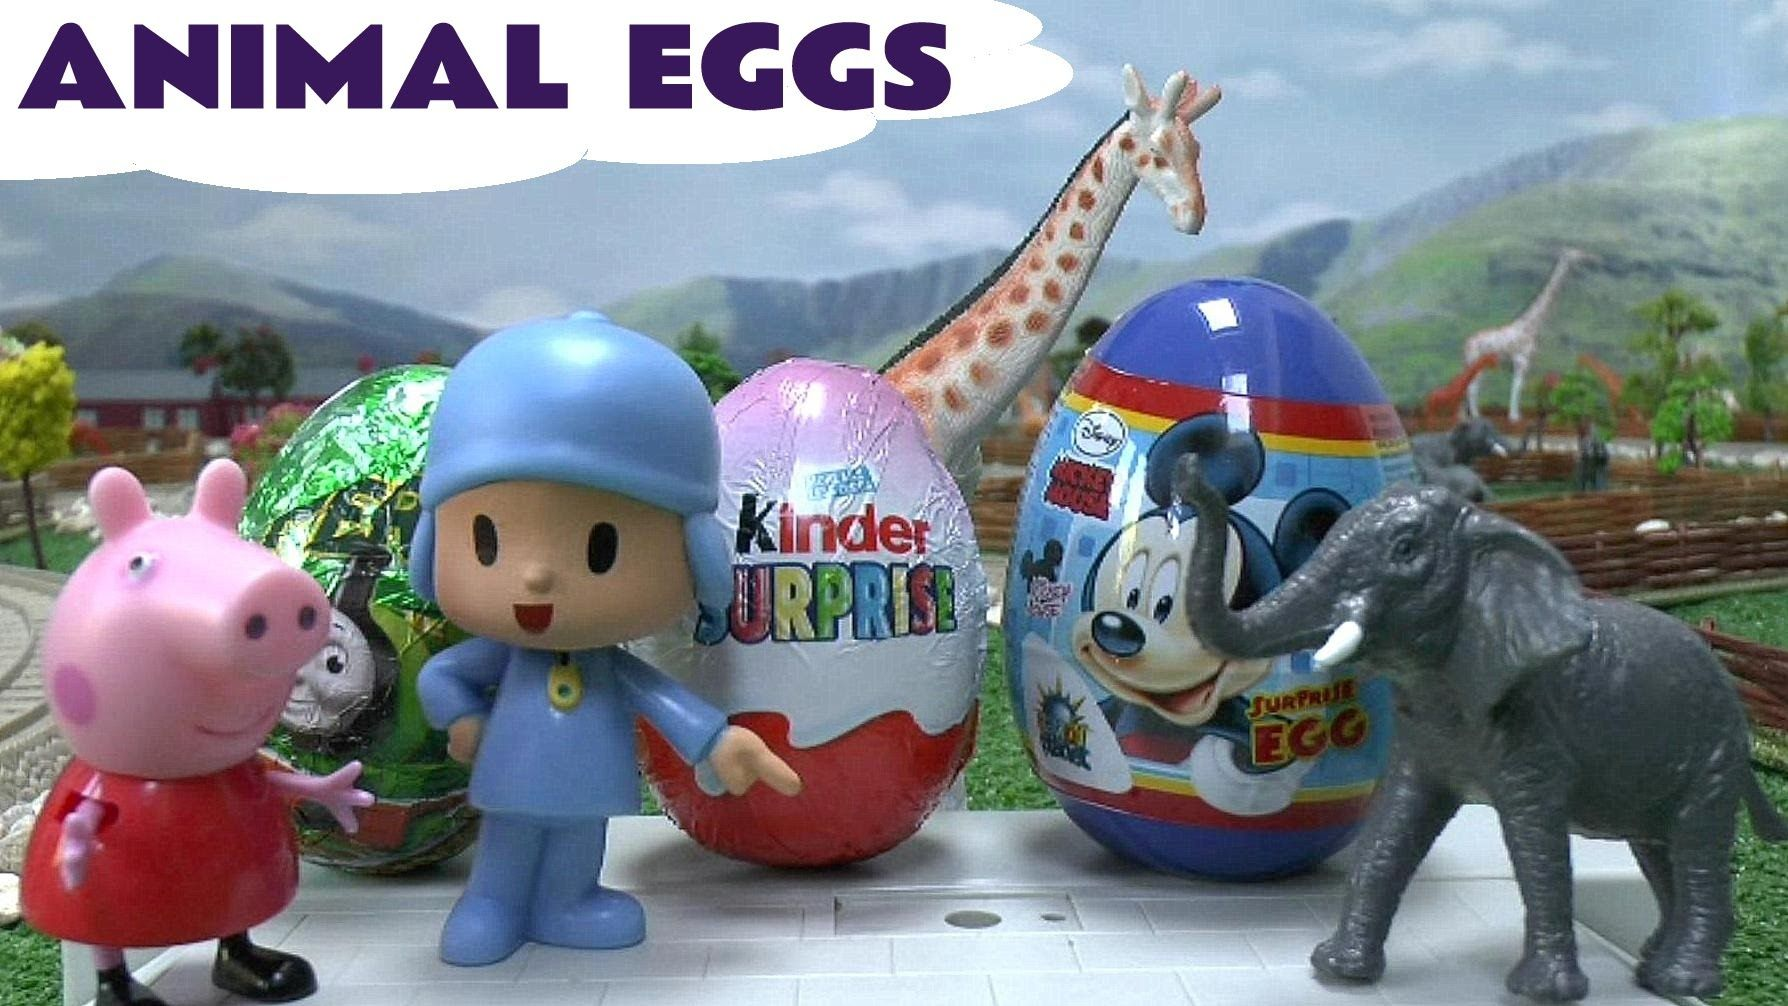 0dc2787f530 Surprise Eggs Mickey Mouse Clubhouse Thomas & Friends Disney Princess Ki...  The animals at Sodor Zoo have found 5 surprise eggs.